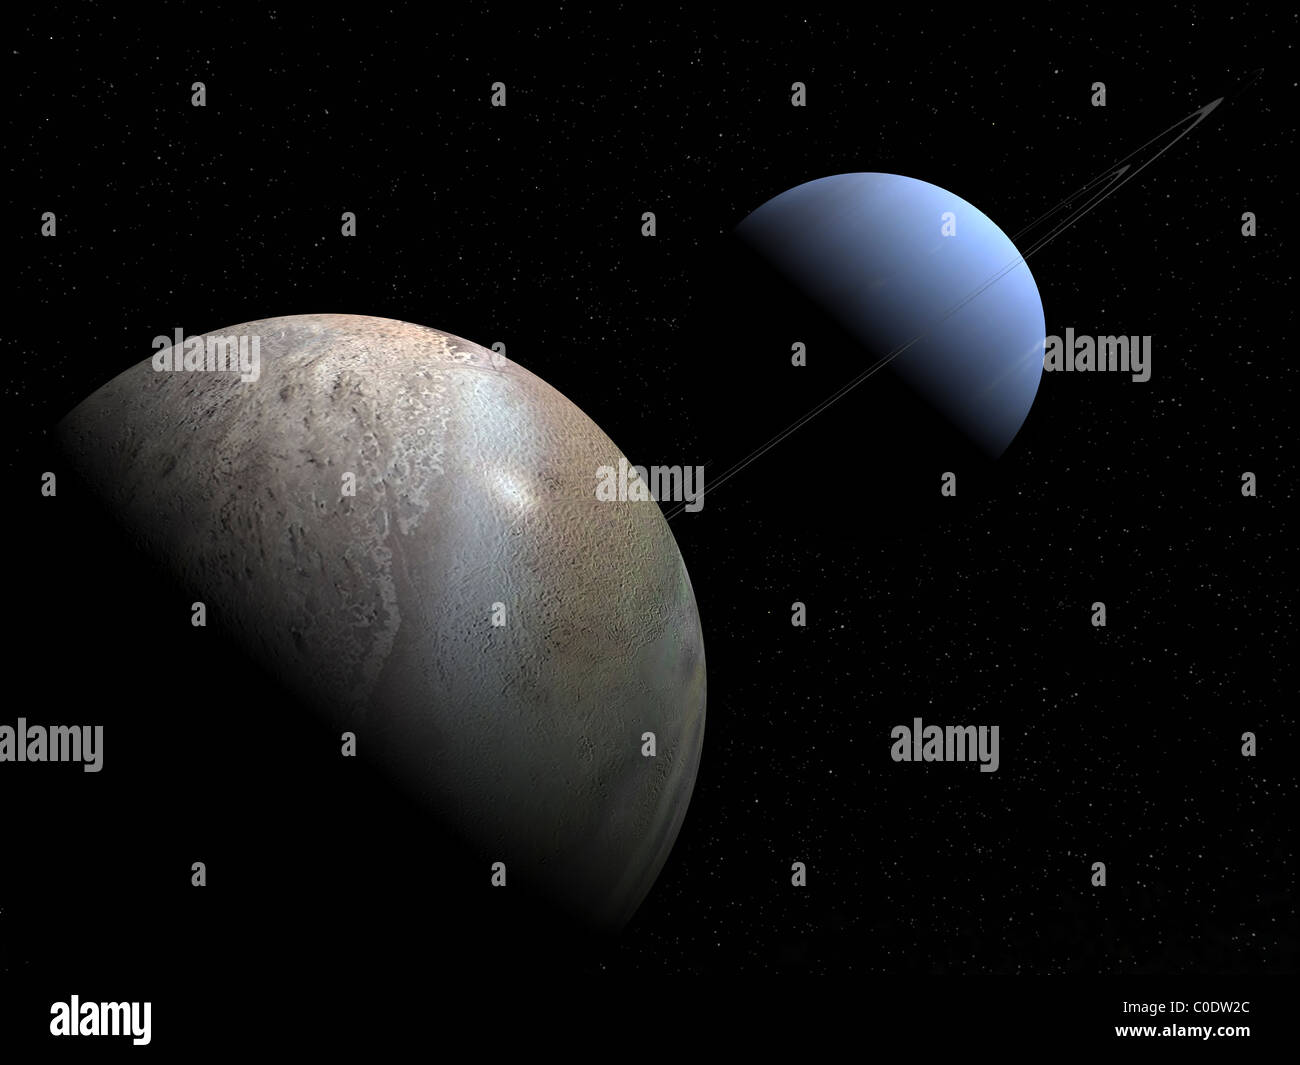 Illustration of the gas giant planet Neptune and its largest moon Triton. - Stock Image